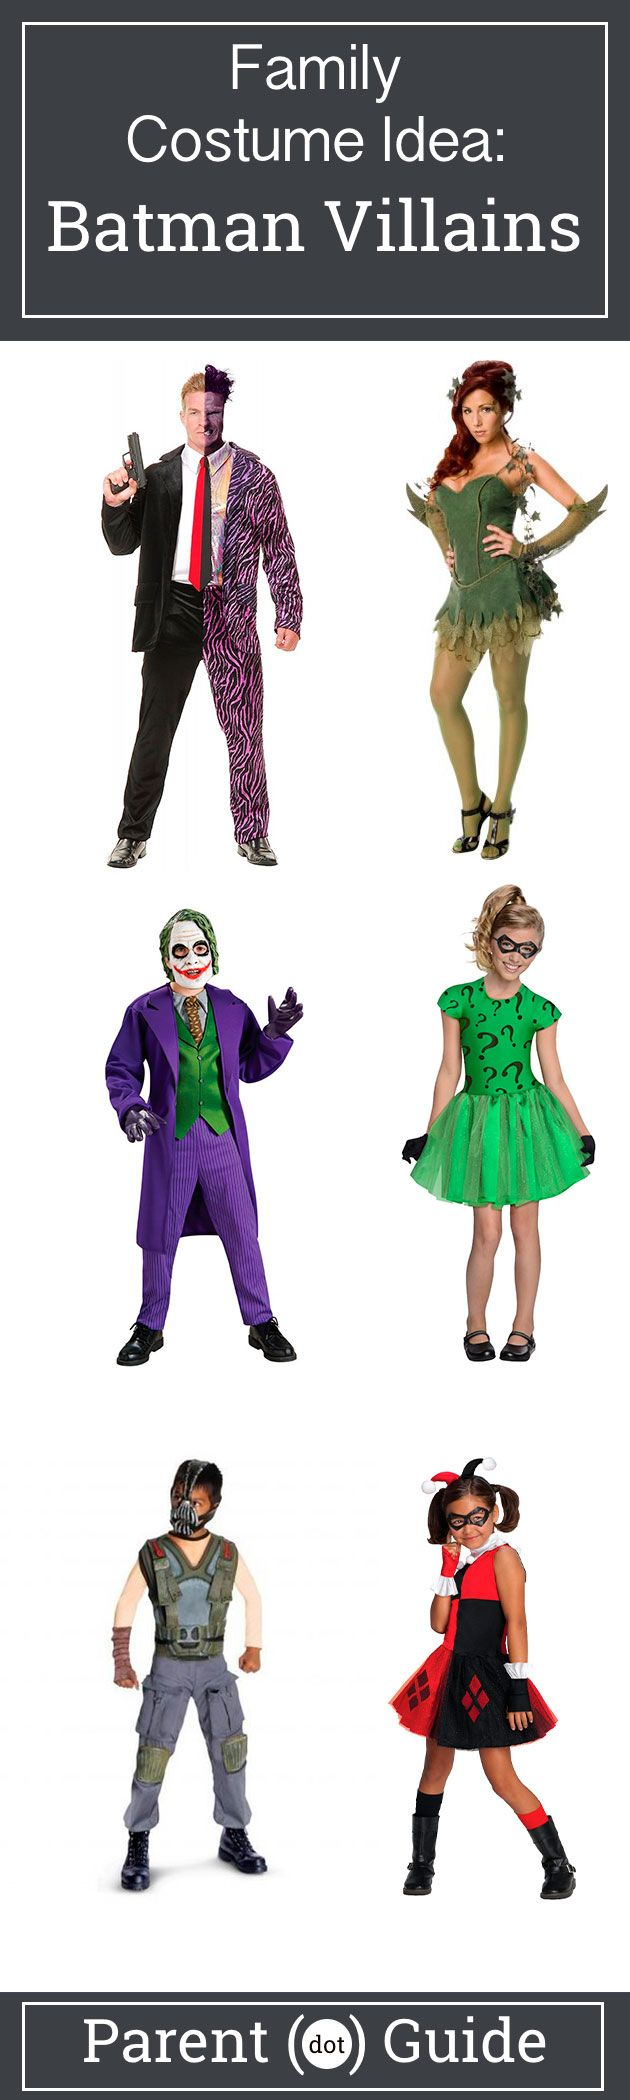 For every hero there is a villain. Dress your family up this halloween to cause mischief. Two Face, Poison Ivy, The Joker, The Riddler, Bane and Harley Quinn costumes will help you achieve your ultimate goal, destroying Gotham City!